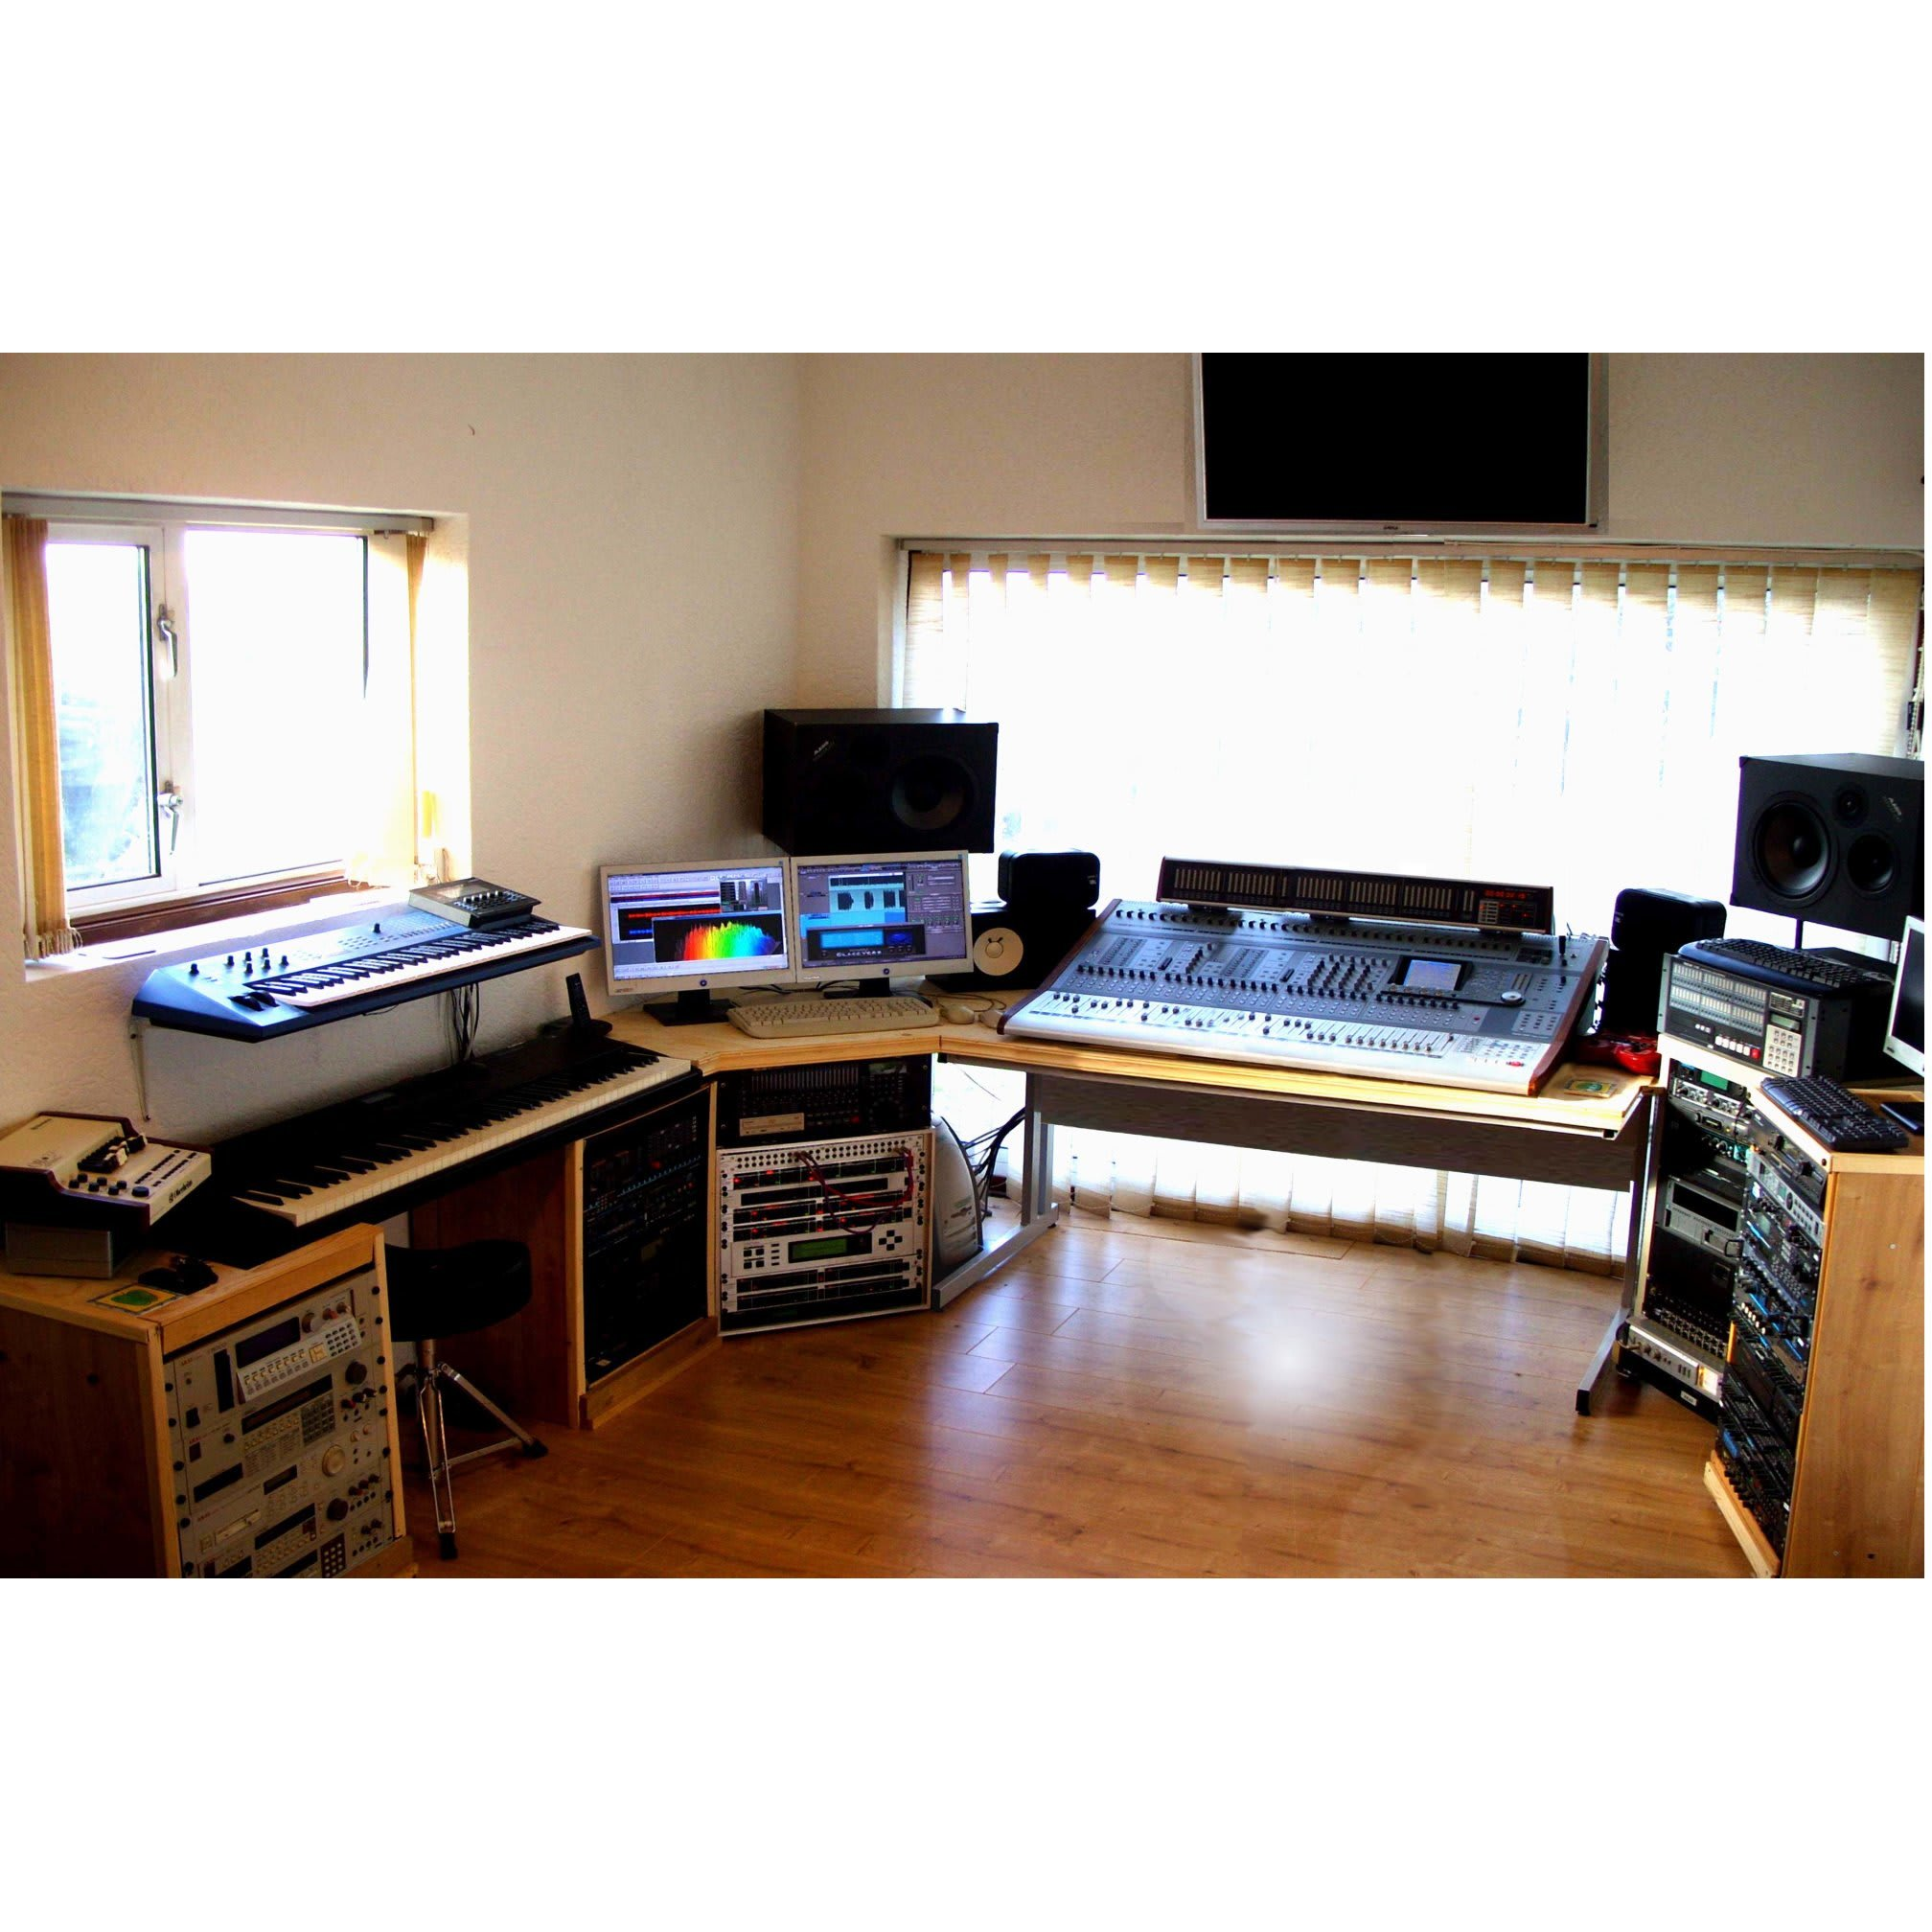 Appletree Studios - Aylesbury, Buckinghamshire HP18 9PL - 01844 237916 | ShowMeLocal.com